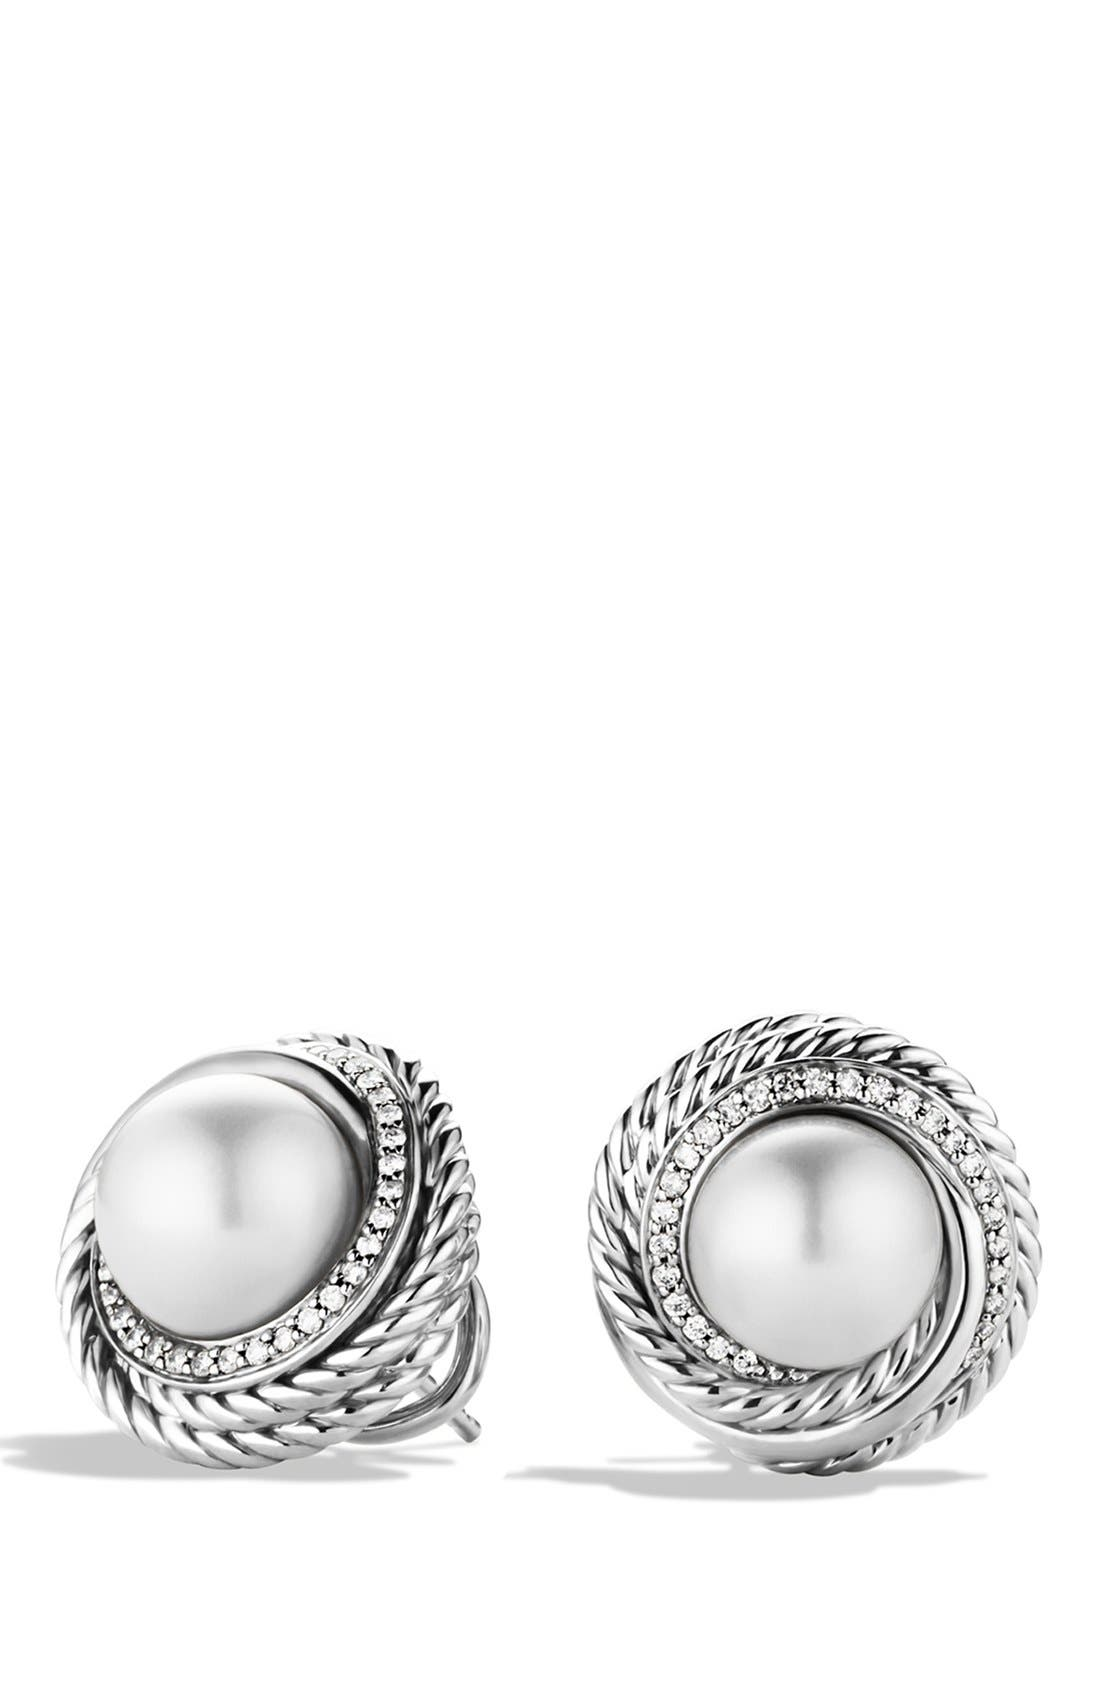 Alternate Image 1 Selected - David Yurman 'Pearl Crossover' Earrings with Diamonds